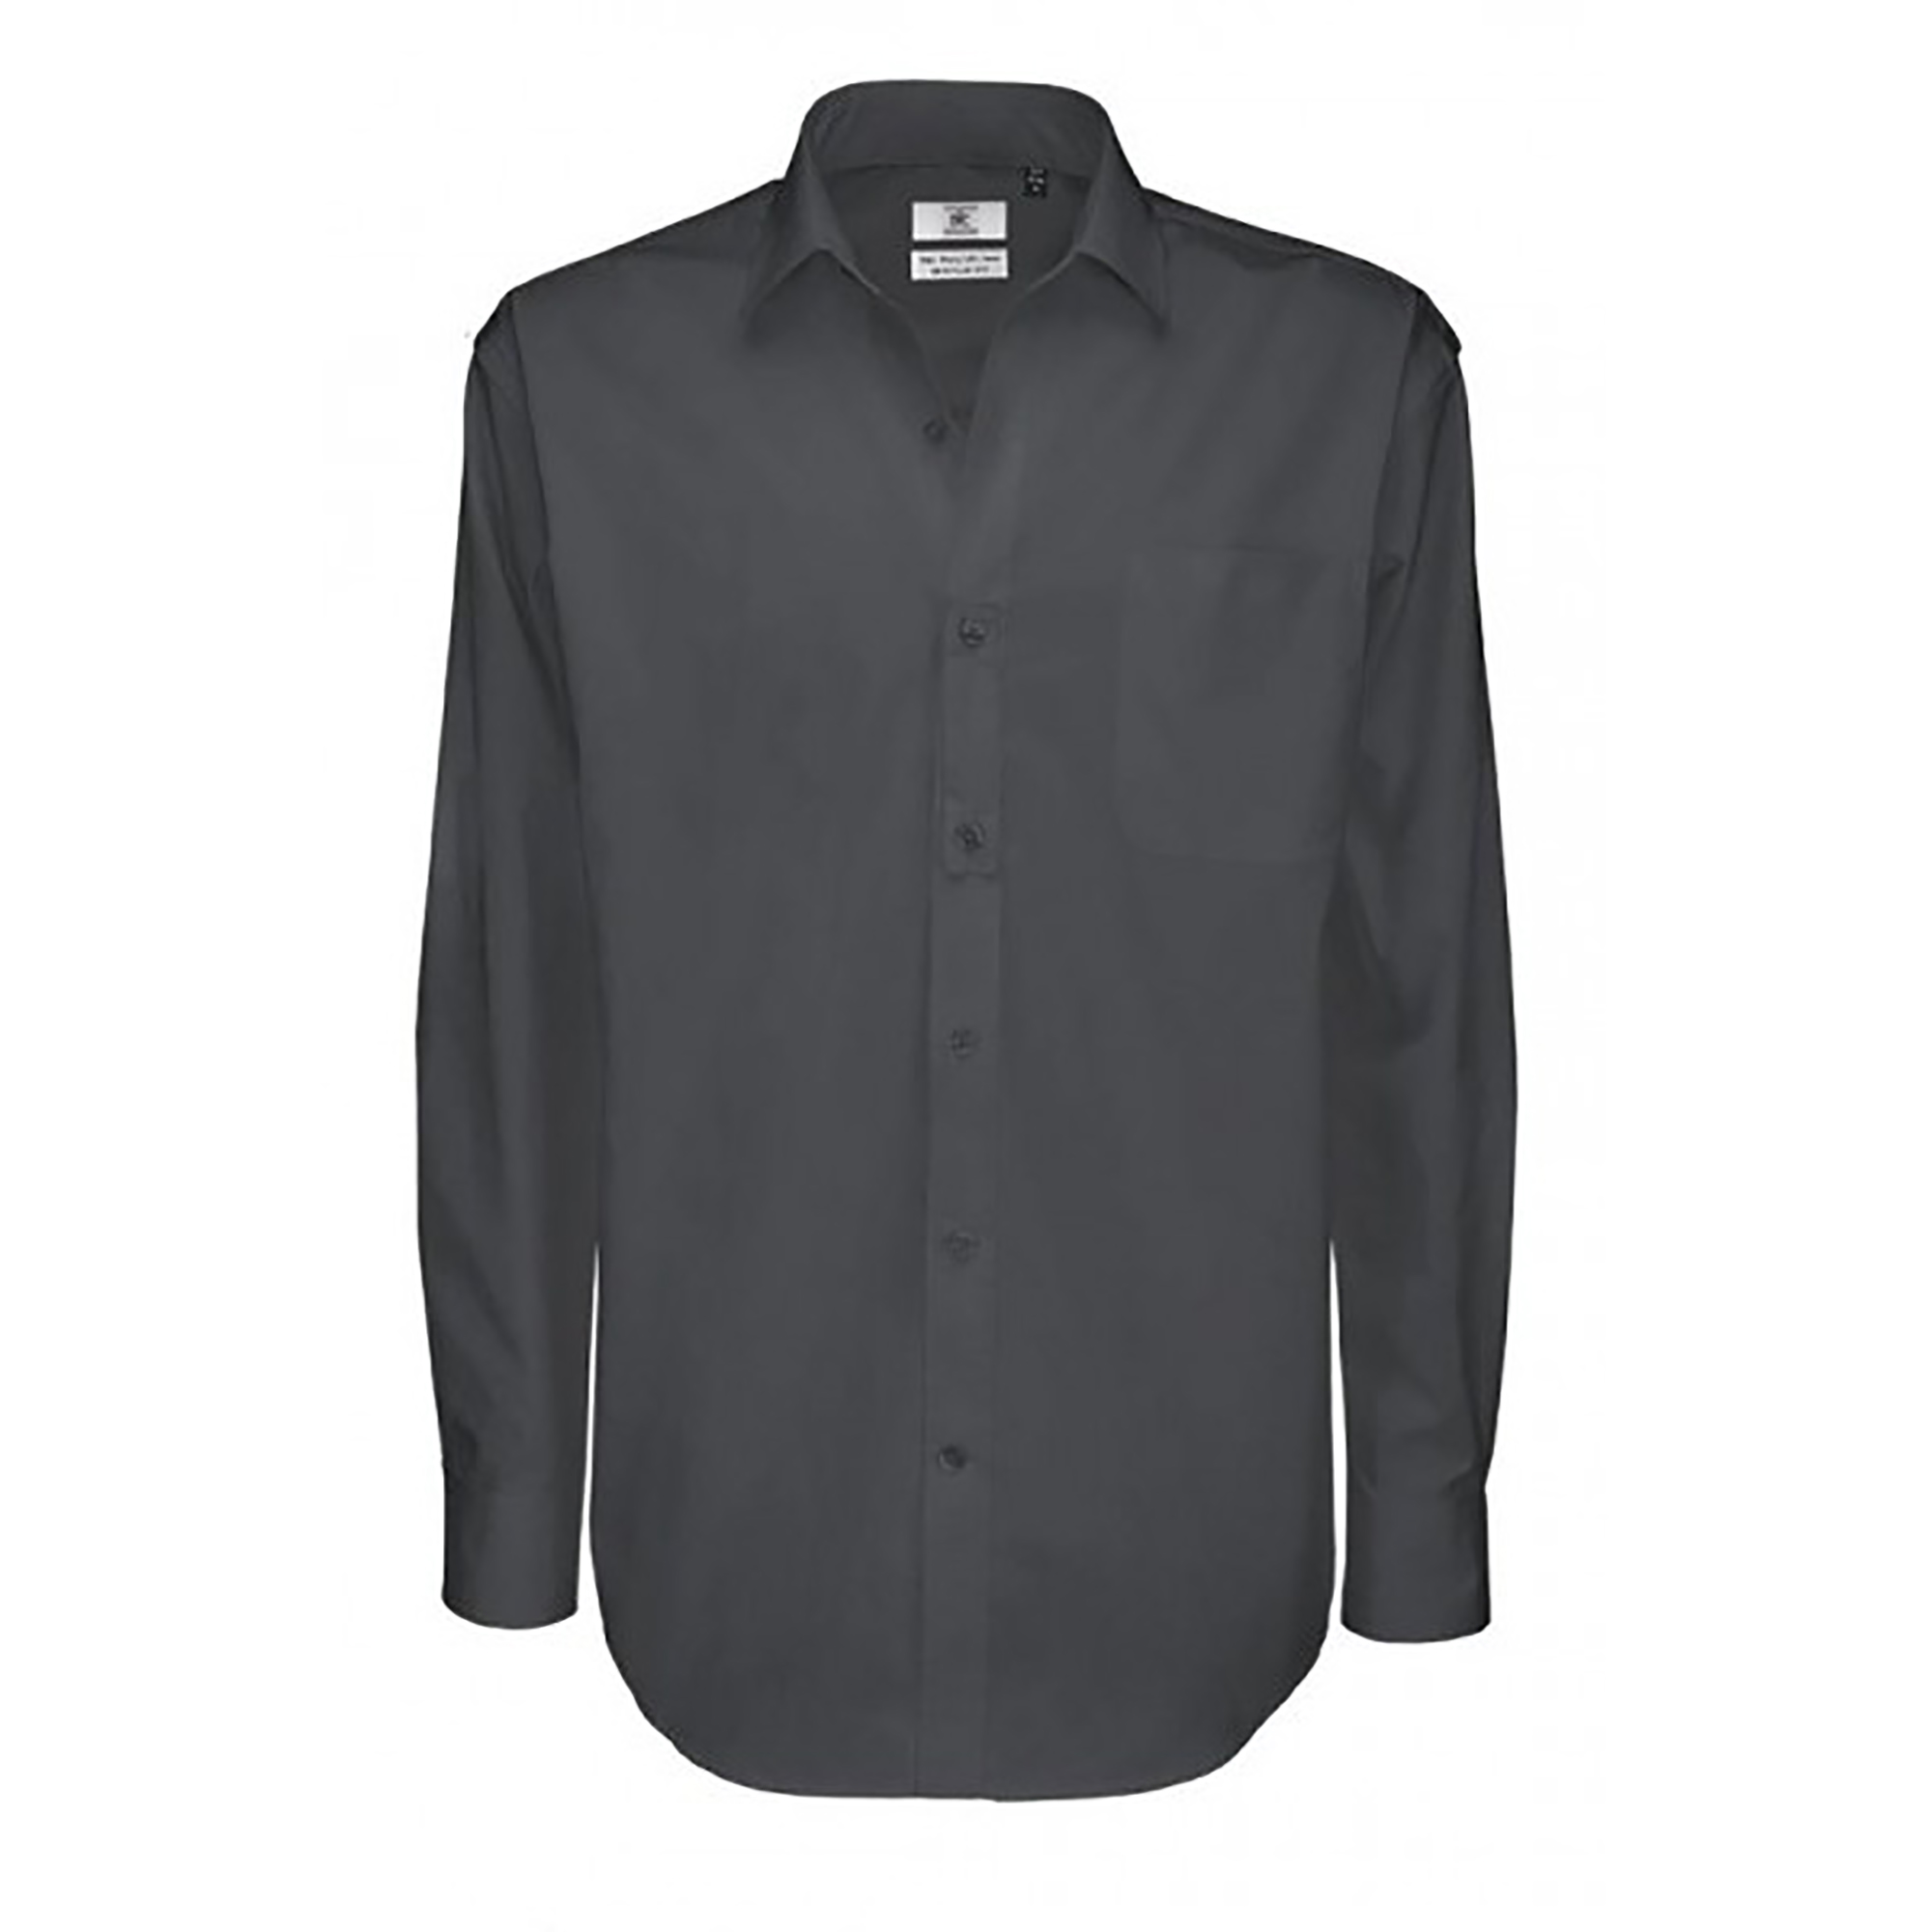 B&C Mens Sharp Twill Cotton Long Sleeve Shirt / Mens Shirts (S) (Dark Grey)